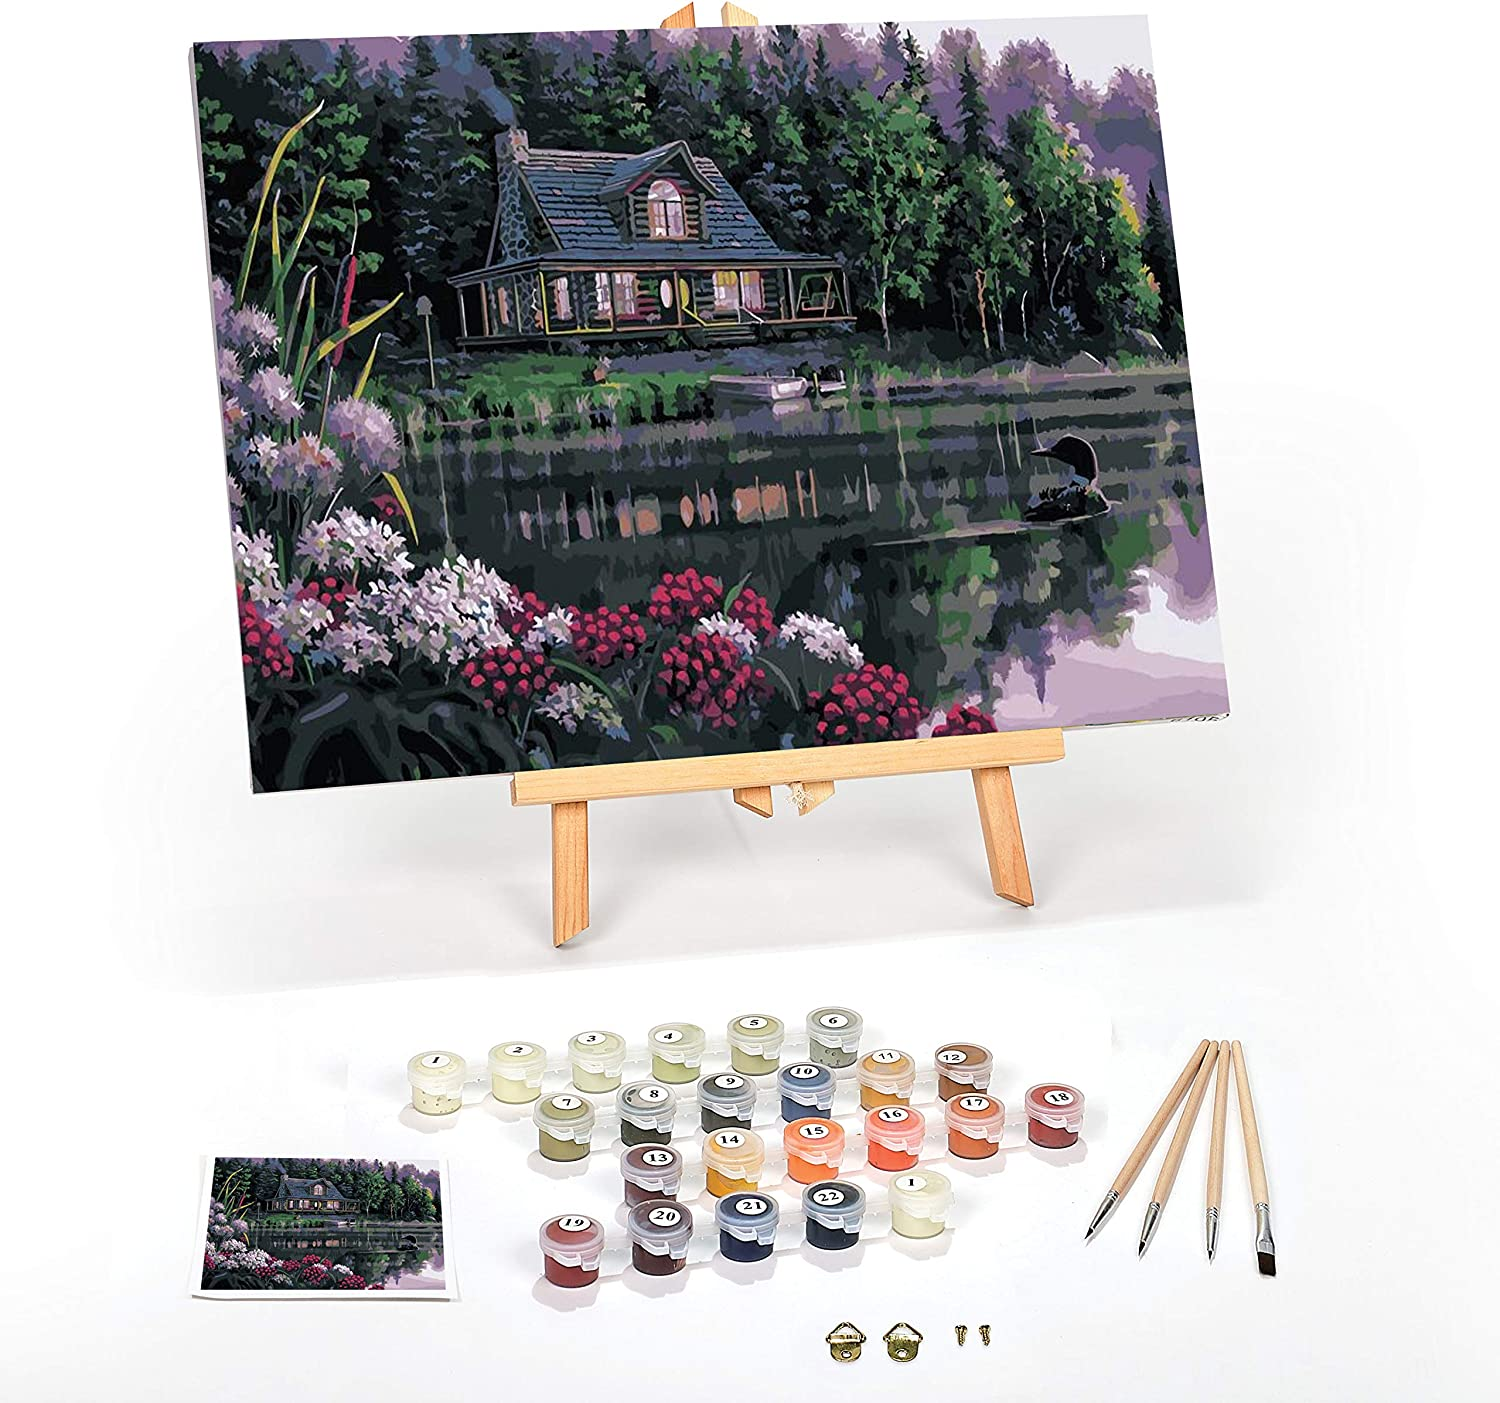 WJGJ Paint by Number Kits London Street With Wooden Stick DIY Oil Painting Works for Adults Kids Beginner